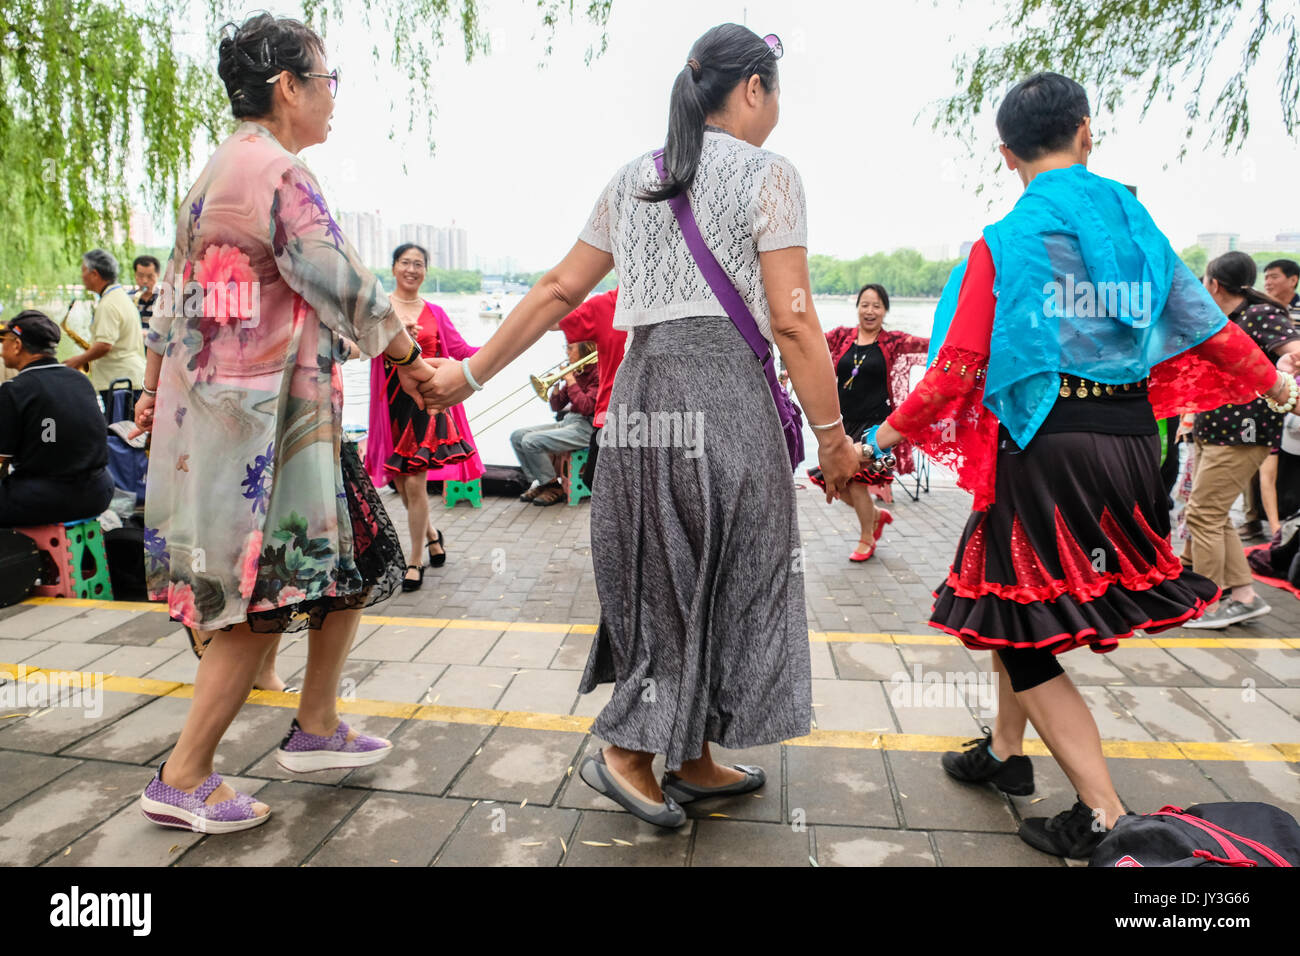 Retired Chinese men and women holding hands and dancing in the park - Stock Image